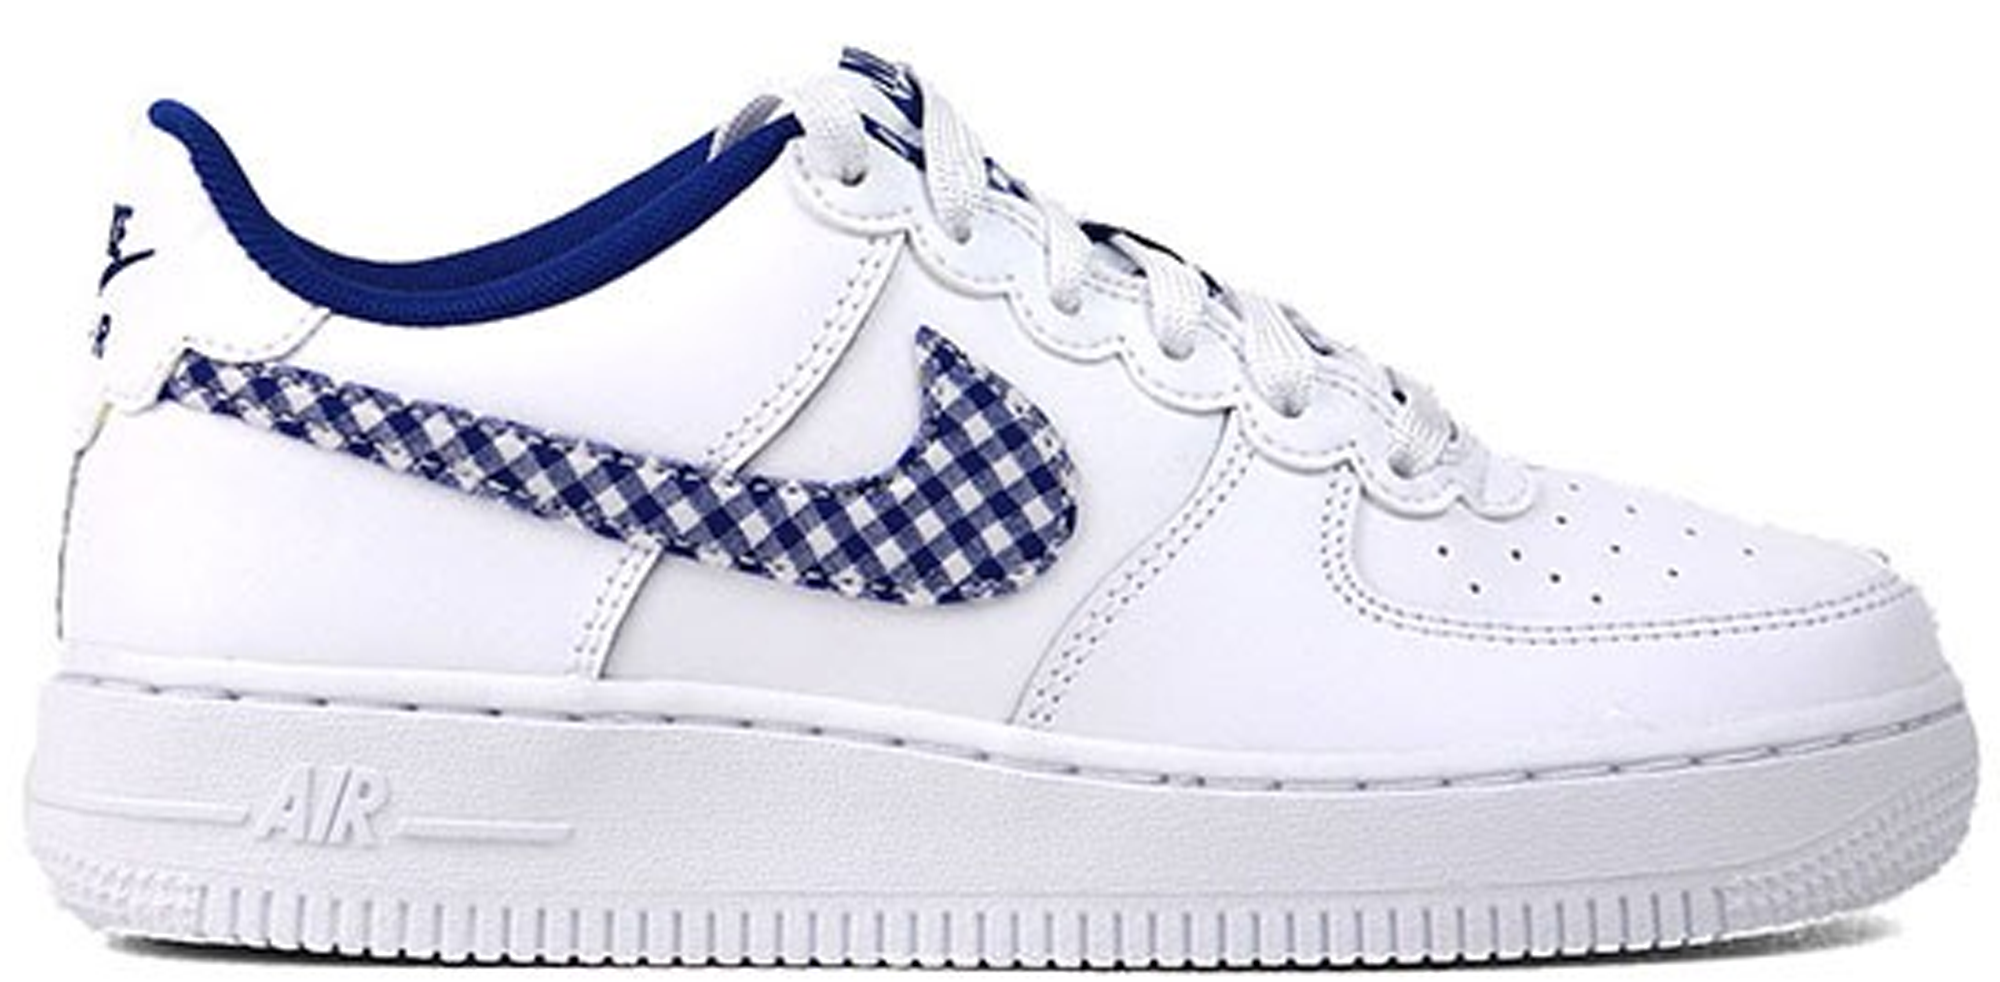 Nike Air Force 1 Low Gingham Pack (GS